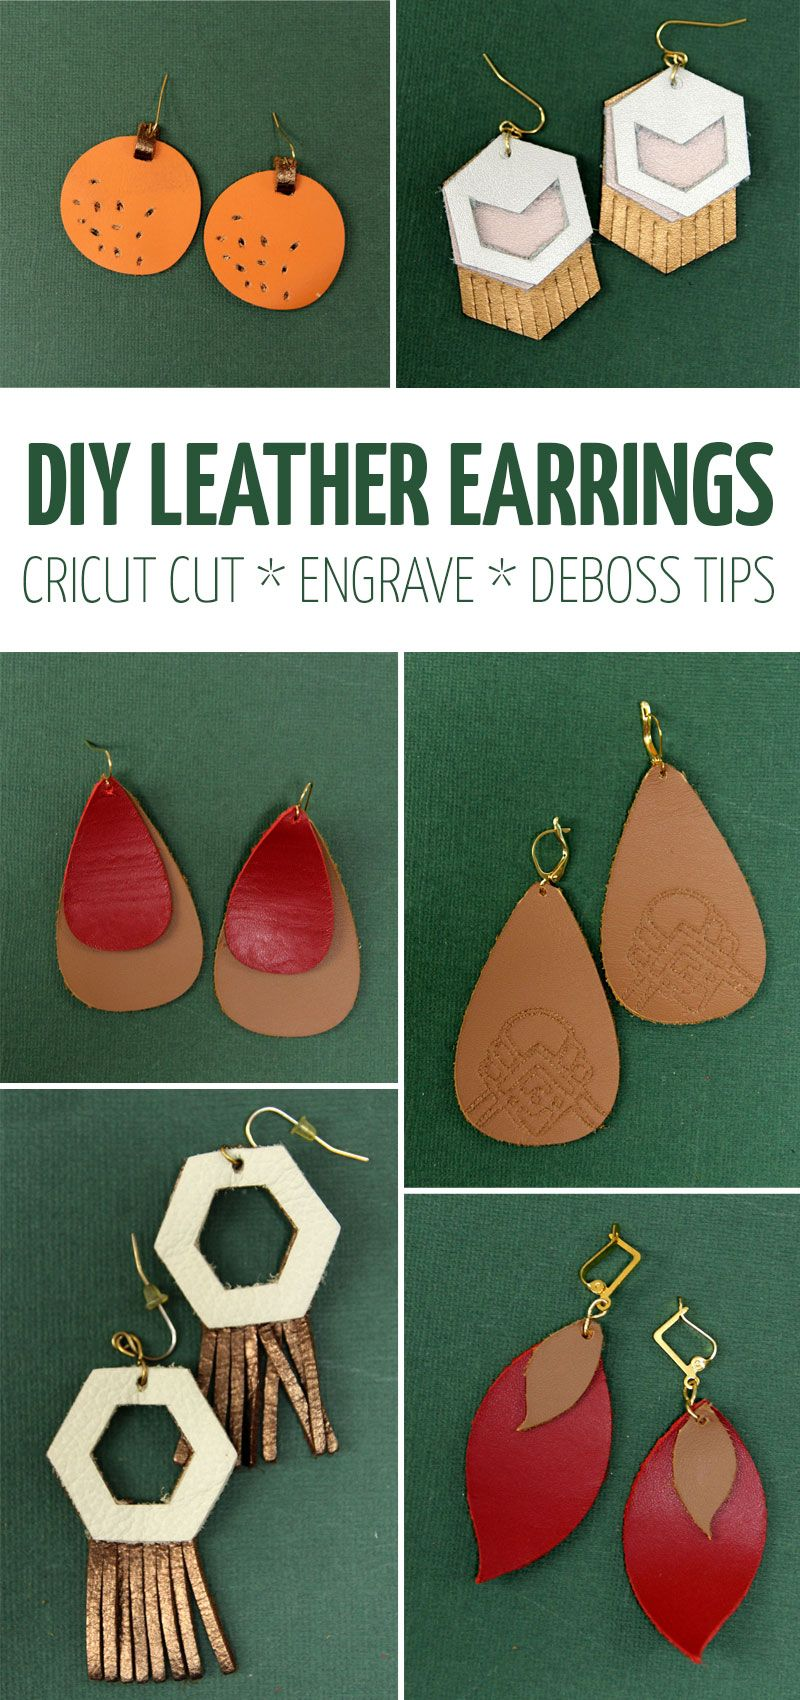 DIY Leather Earrings + Cricut Tips and Tricks in 2020